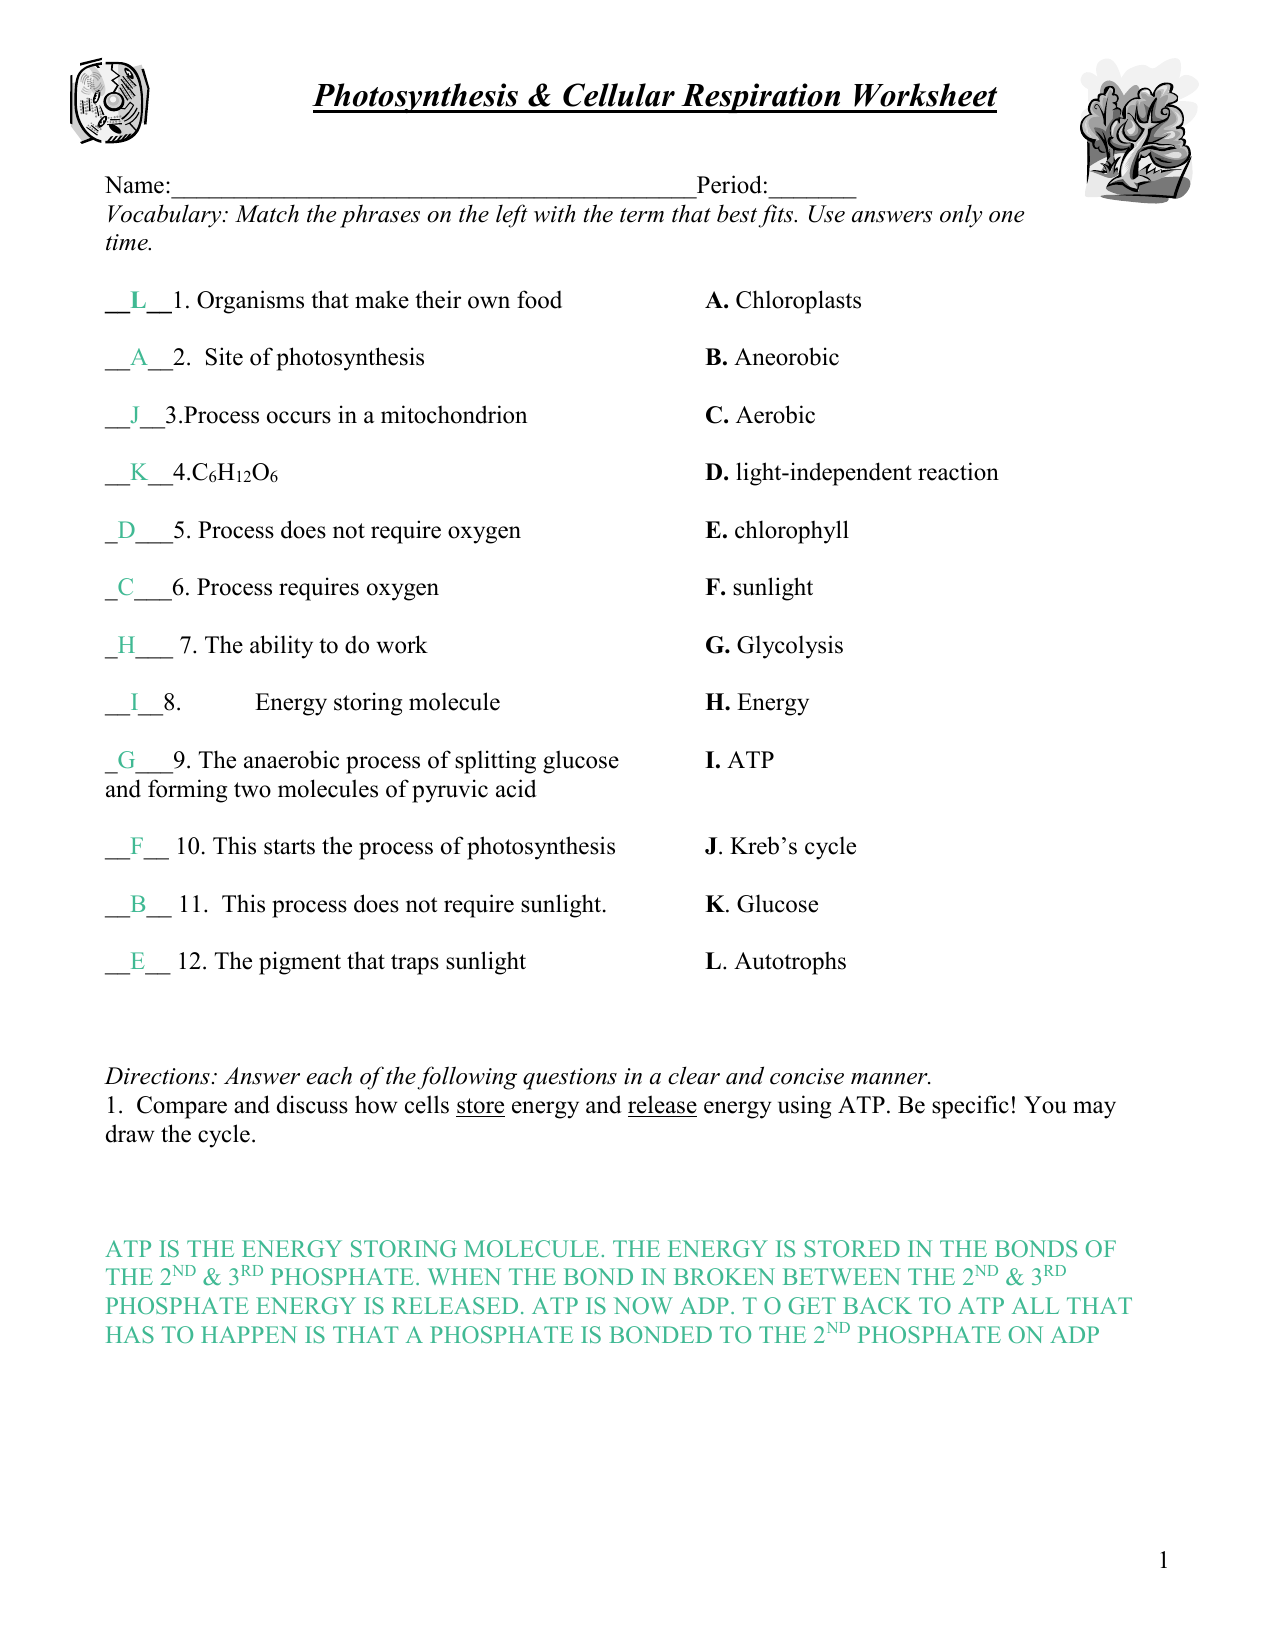 Key Photosynthesis Respiration Review Worksheet